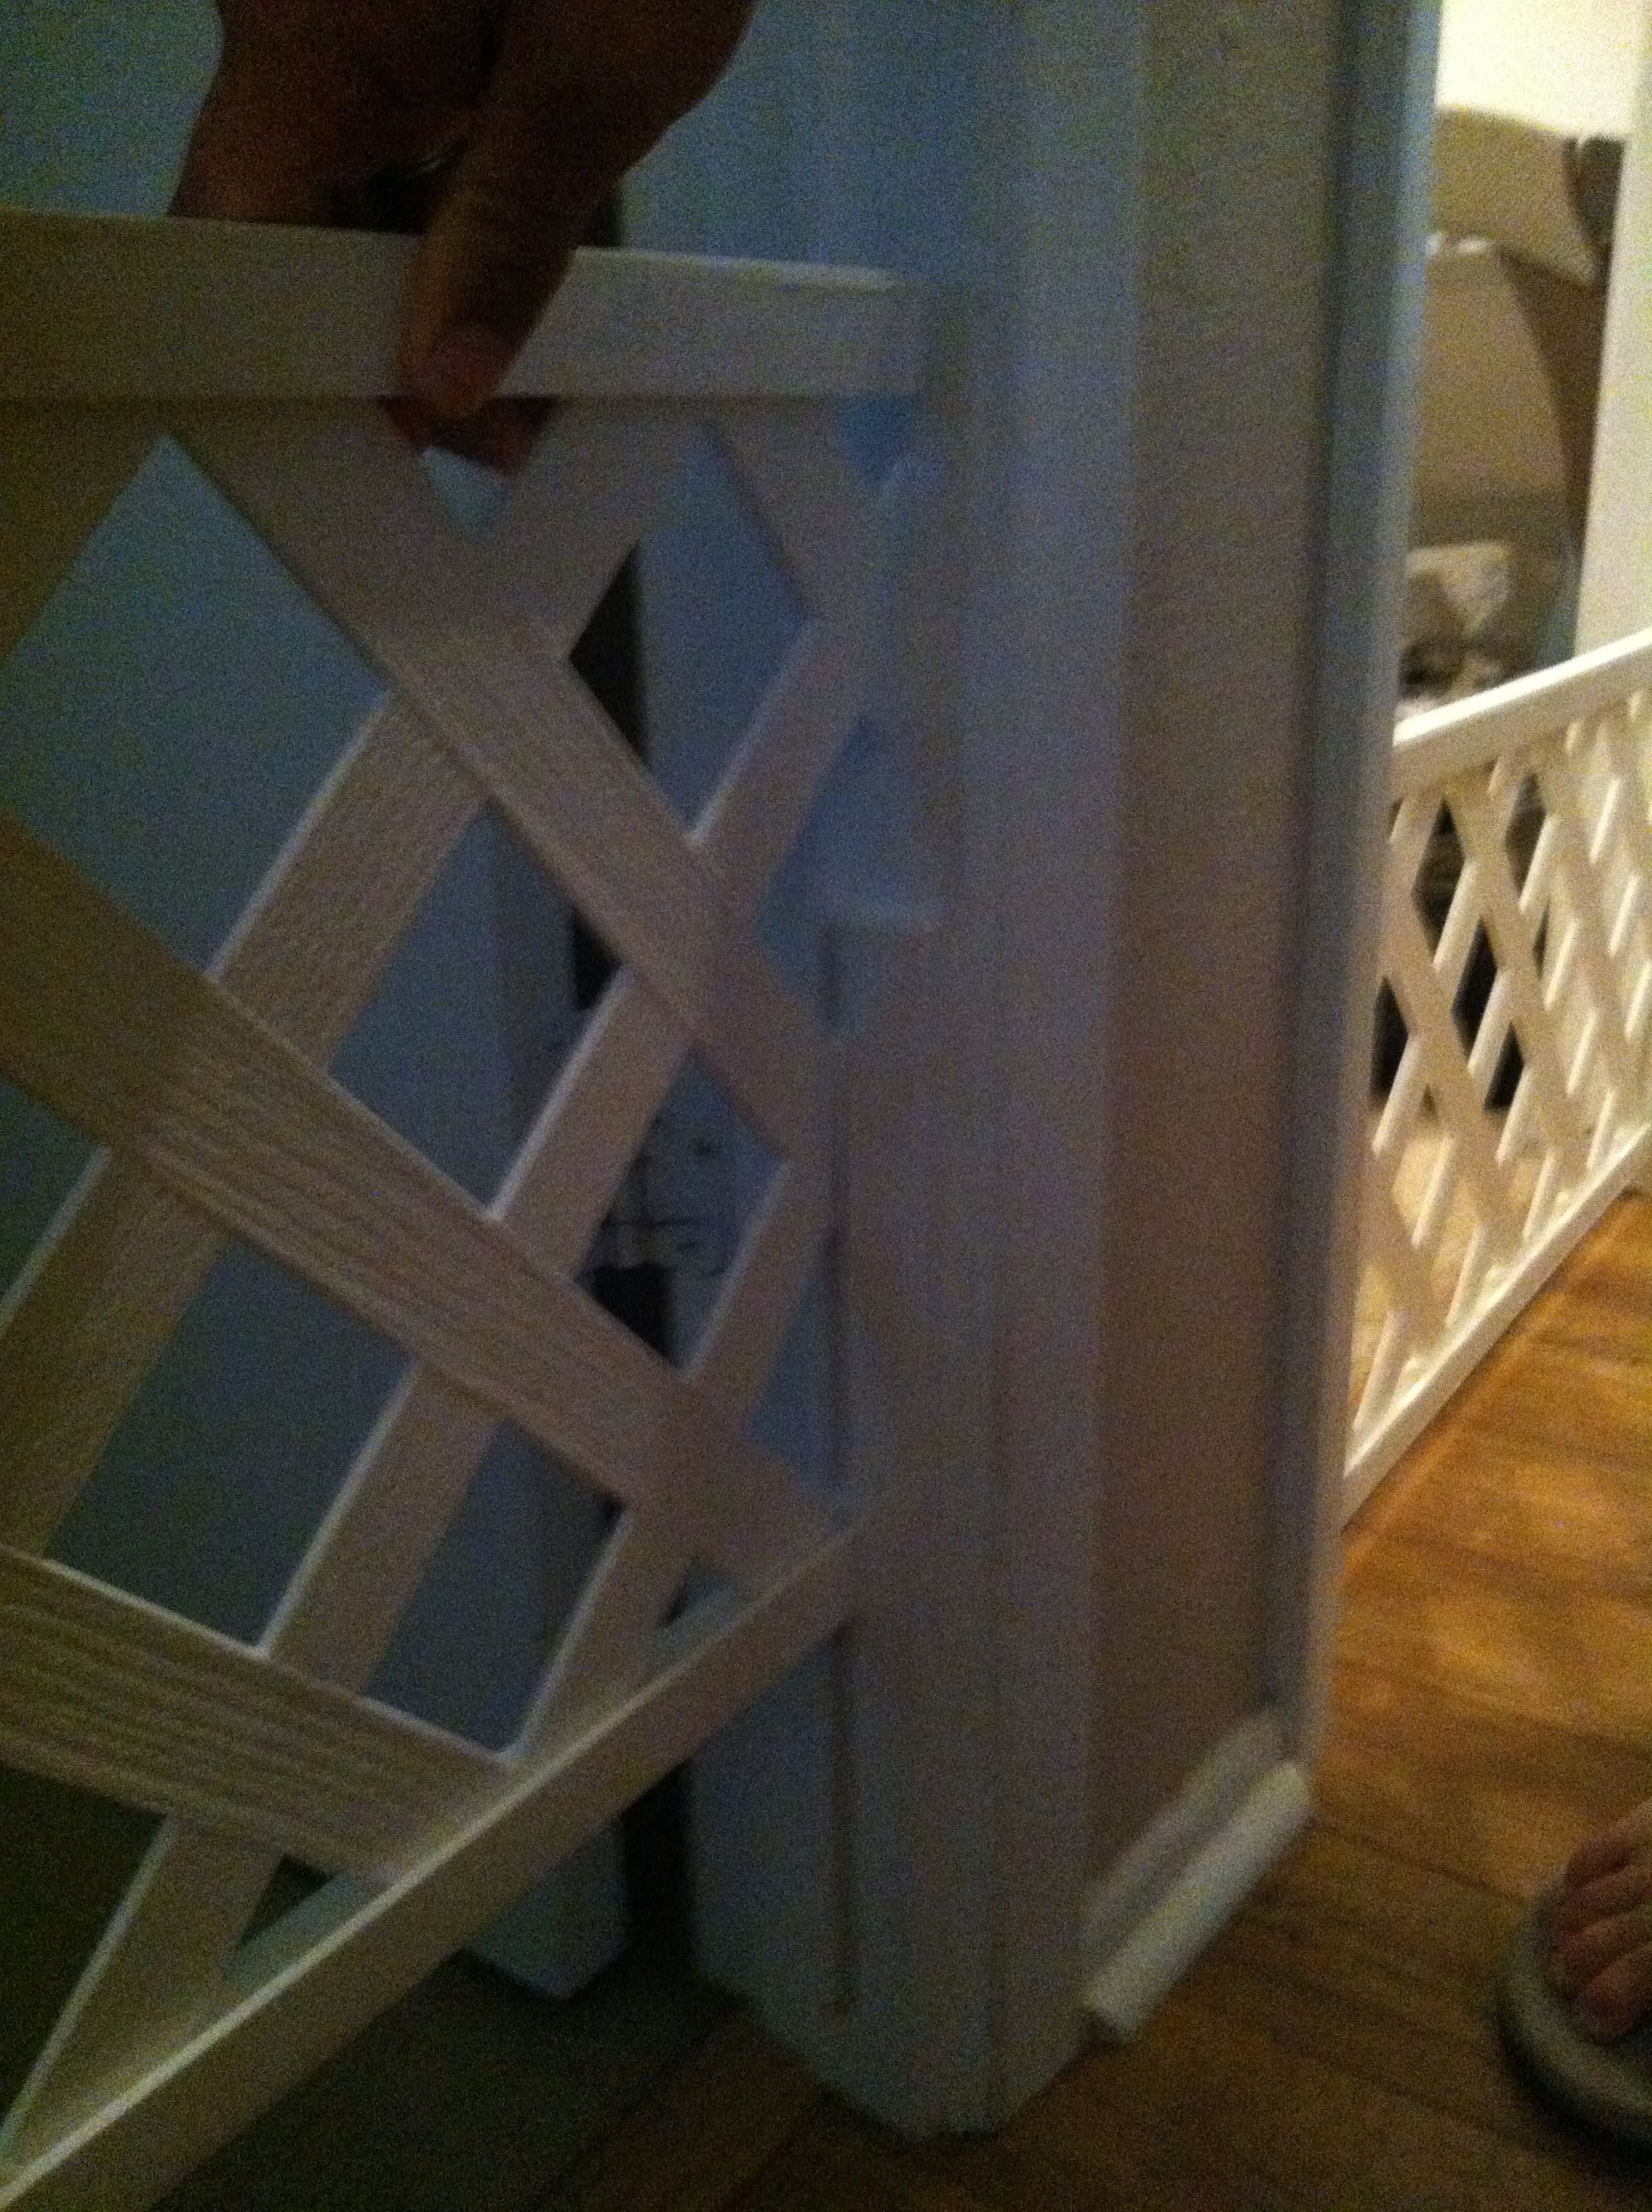 Easy Diy Dog Gate Lattice Work And Apply A Piace Of Wood To The Door So It Slides Up And Down Diy Dog Gate Diy Baby Gate Dog Gate